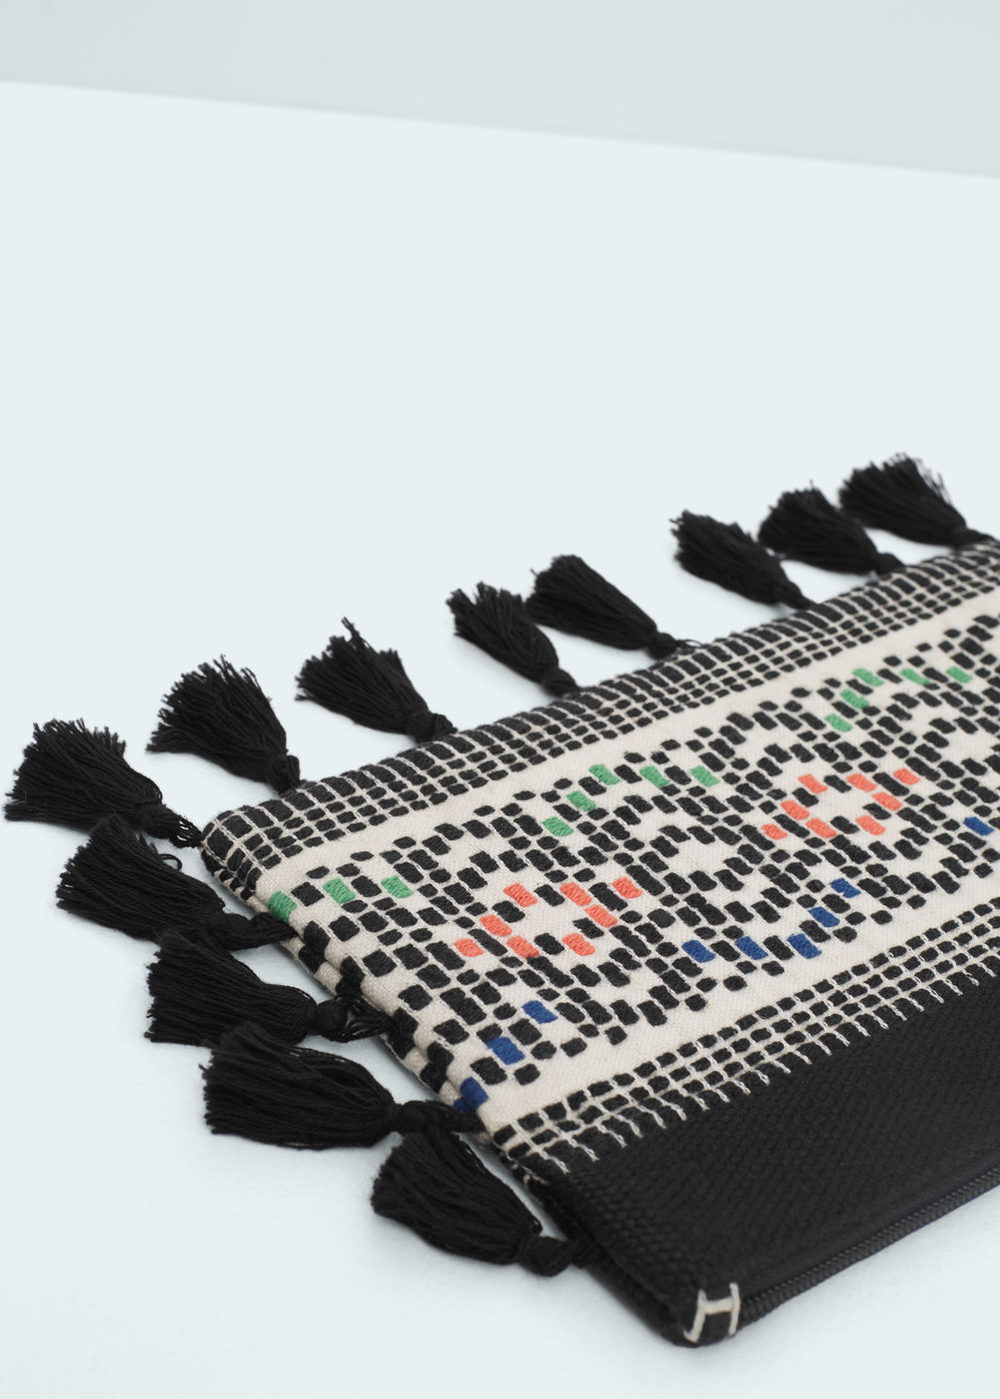 Mango Tassel Ethnic Cosmetic Bag, $39